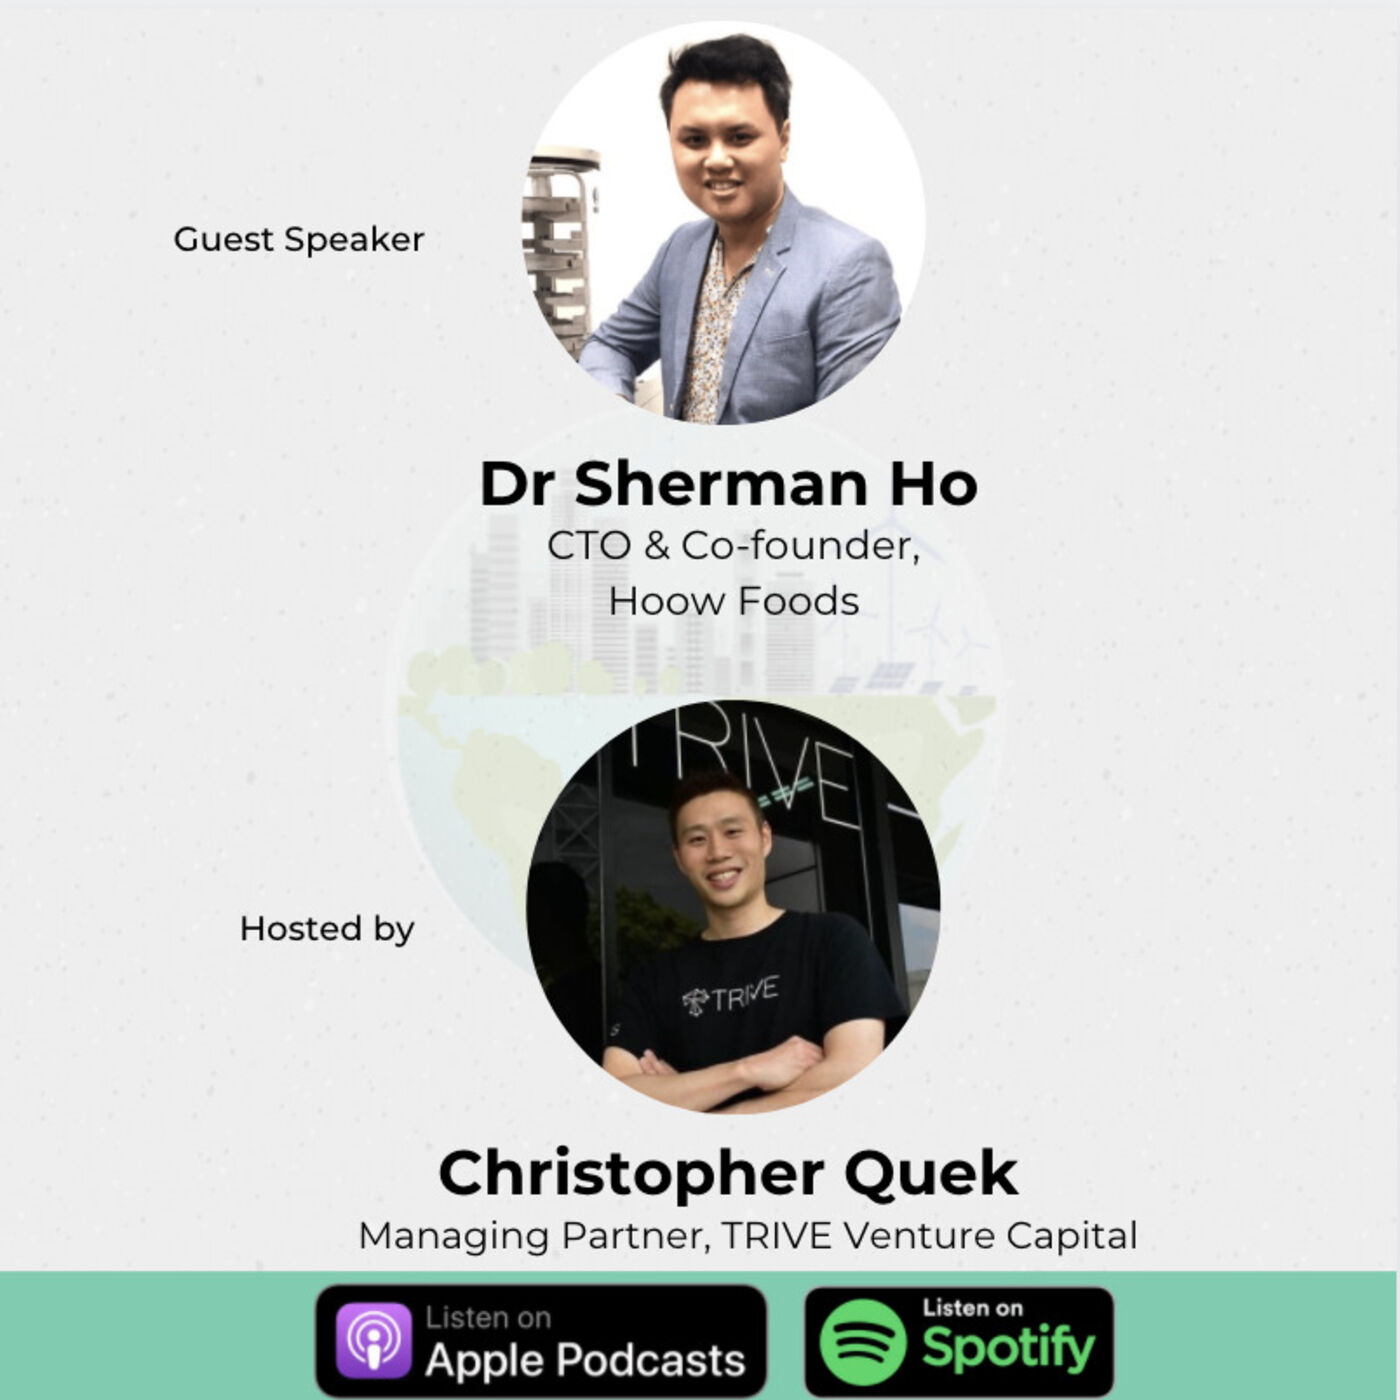 The science of Foodtech in Healthy Foods - Dr Sherman Ho, Hoow Foods